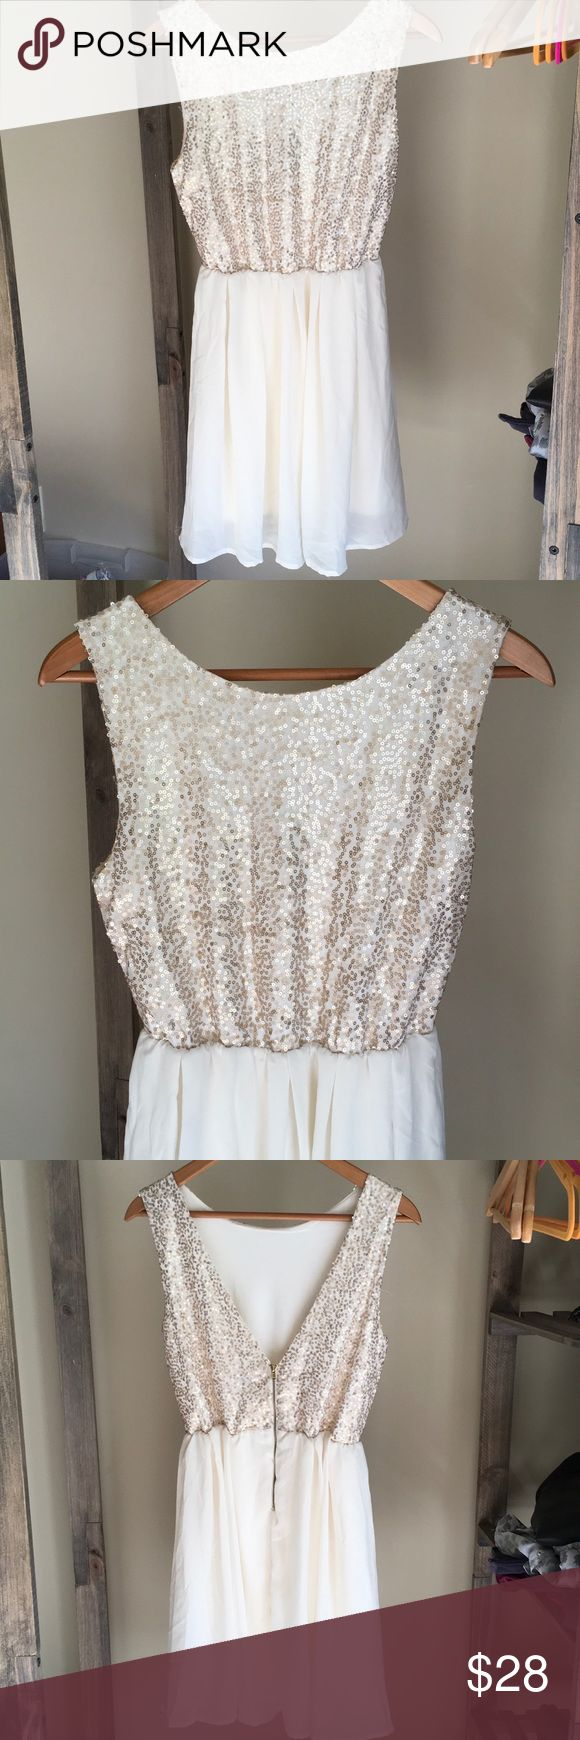 """🆕 Listing! Charming Charlie Sequin dress Adorable gold and cream Sequin dress from Charming Charlie.  Deep V-cut in the back with zipper.  Flowy bottom half.  In excellent condition.  Measures 34"""" long.  Also available in black, size Medium. Charming Charlie Dresses"""